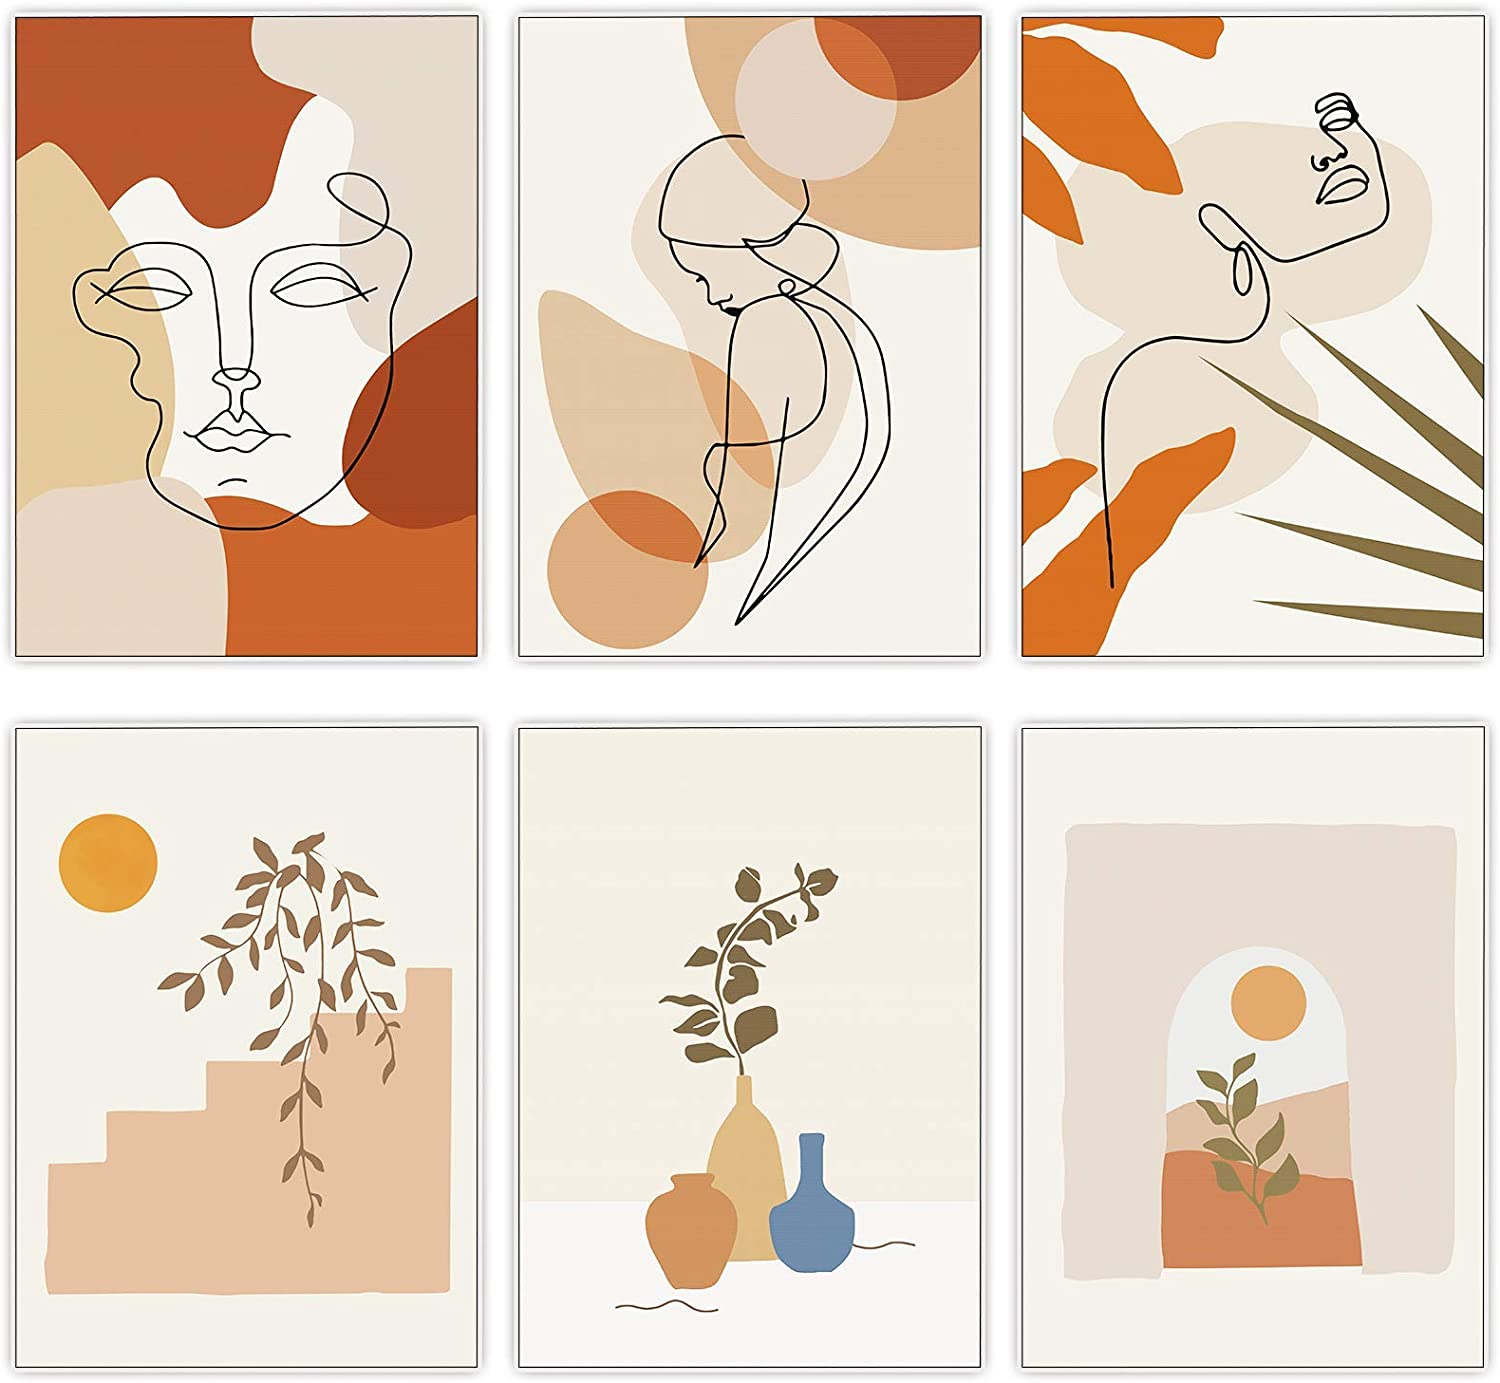 """Retyion 6 Pack Abstract Wall Art Prints ,Woman Line Art Botanical Plant Drawings Posters Prints Minimalist Line Art for Bedroom Decor/ Kitchen Decor/ Office Wall Decor, 9.8""""x13.8"""""""